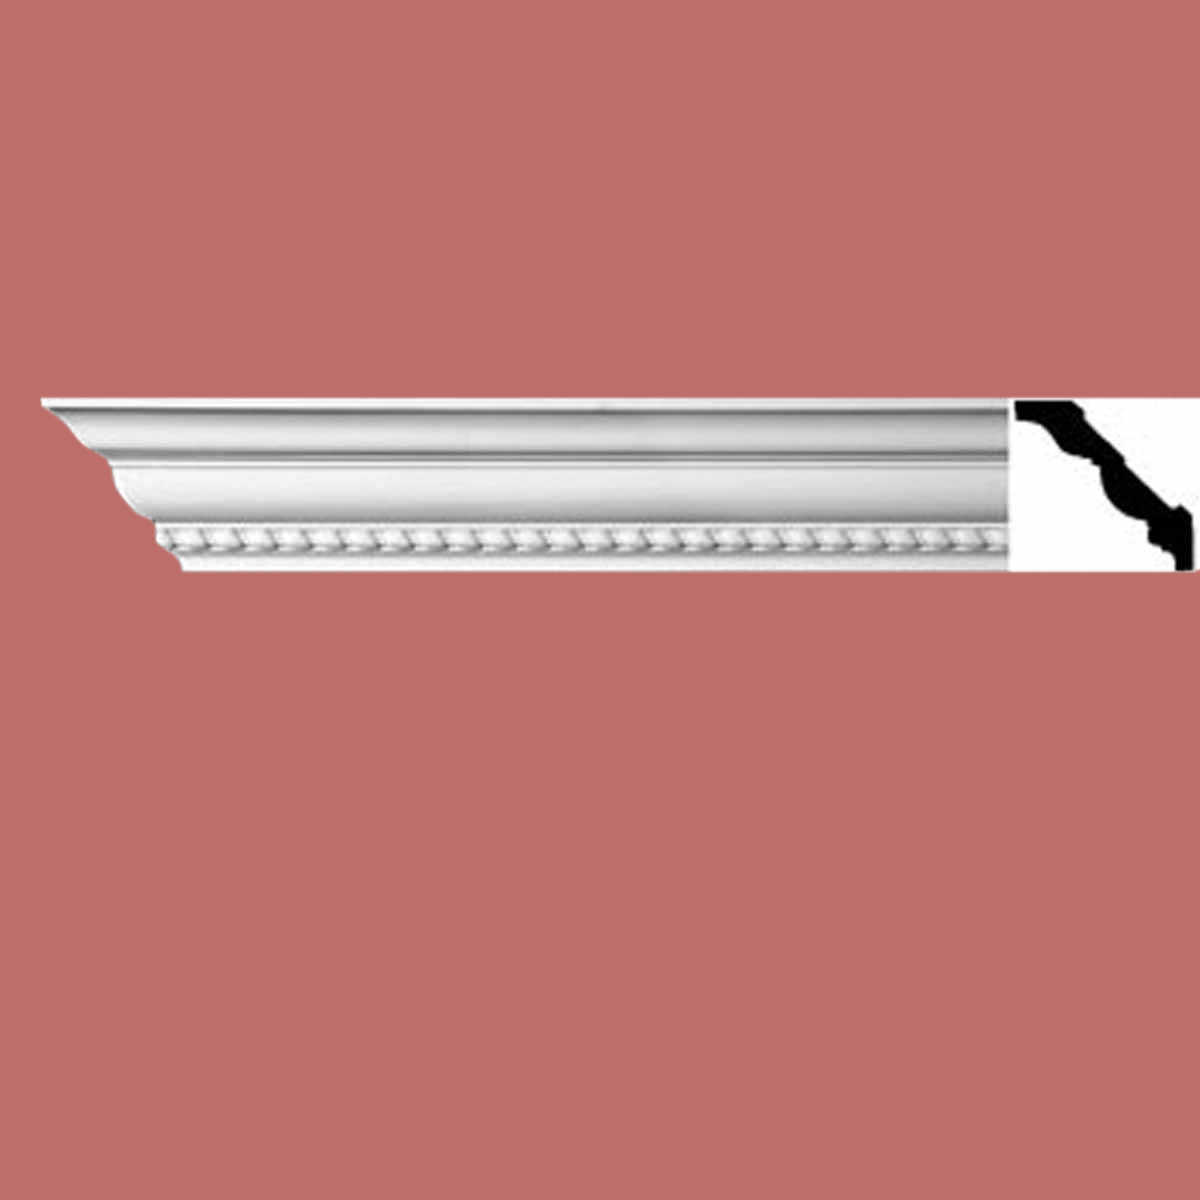 Ornate Cornice White Urethane 3' H Chilton Springs | Renovator's Supply